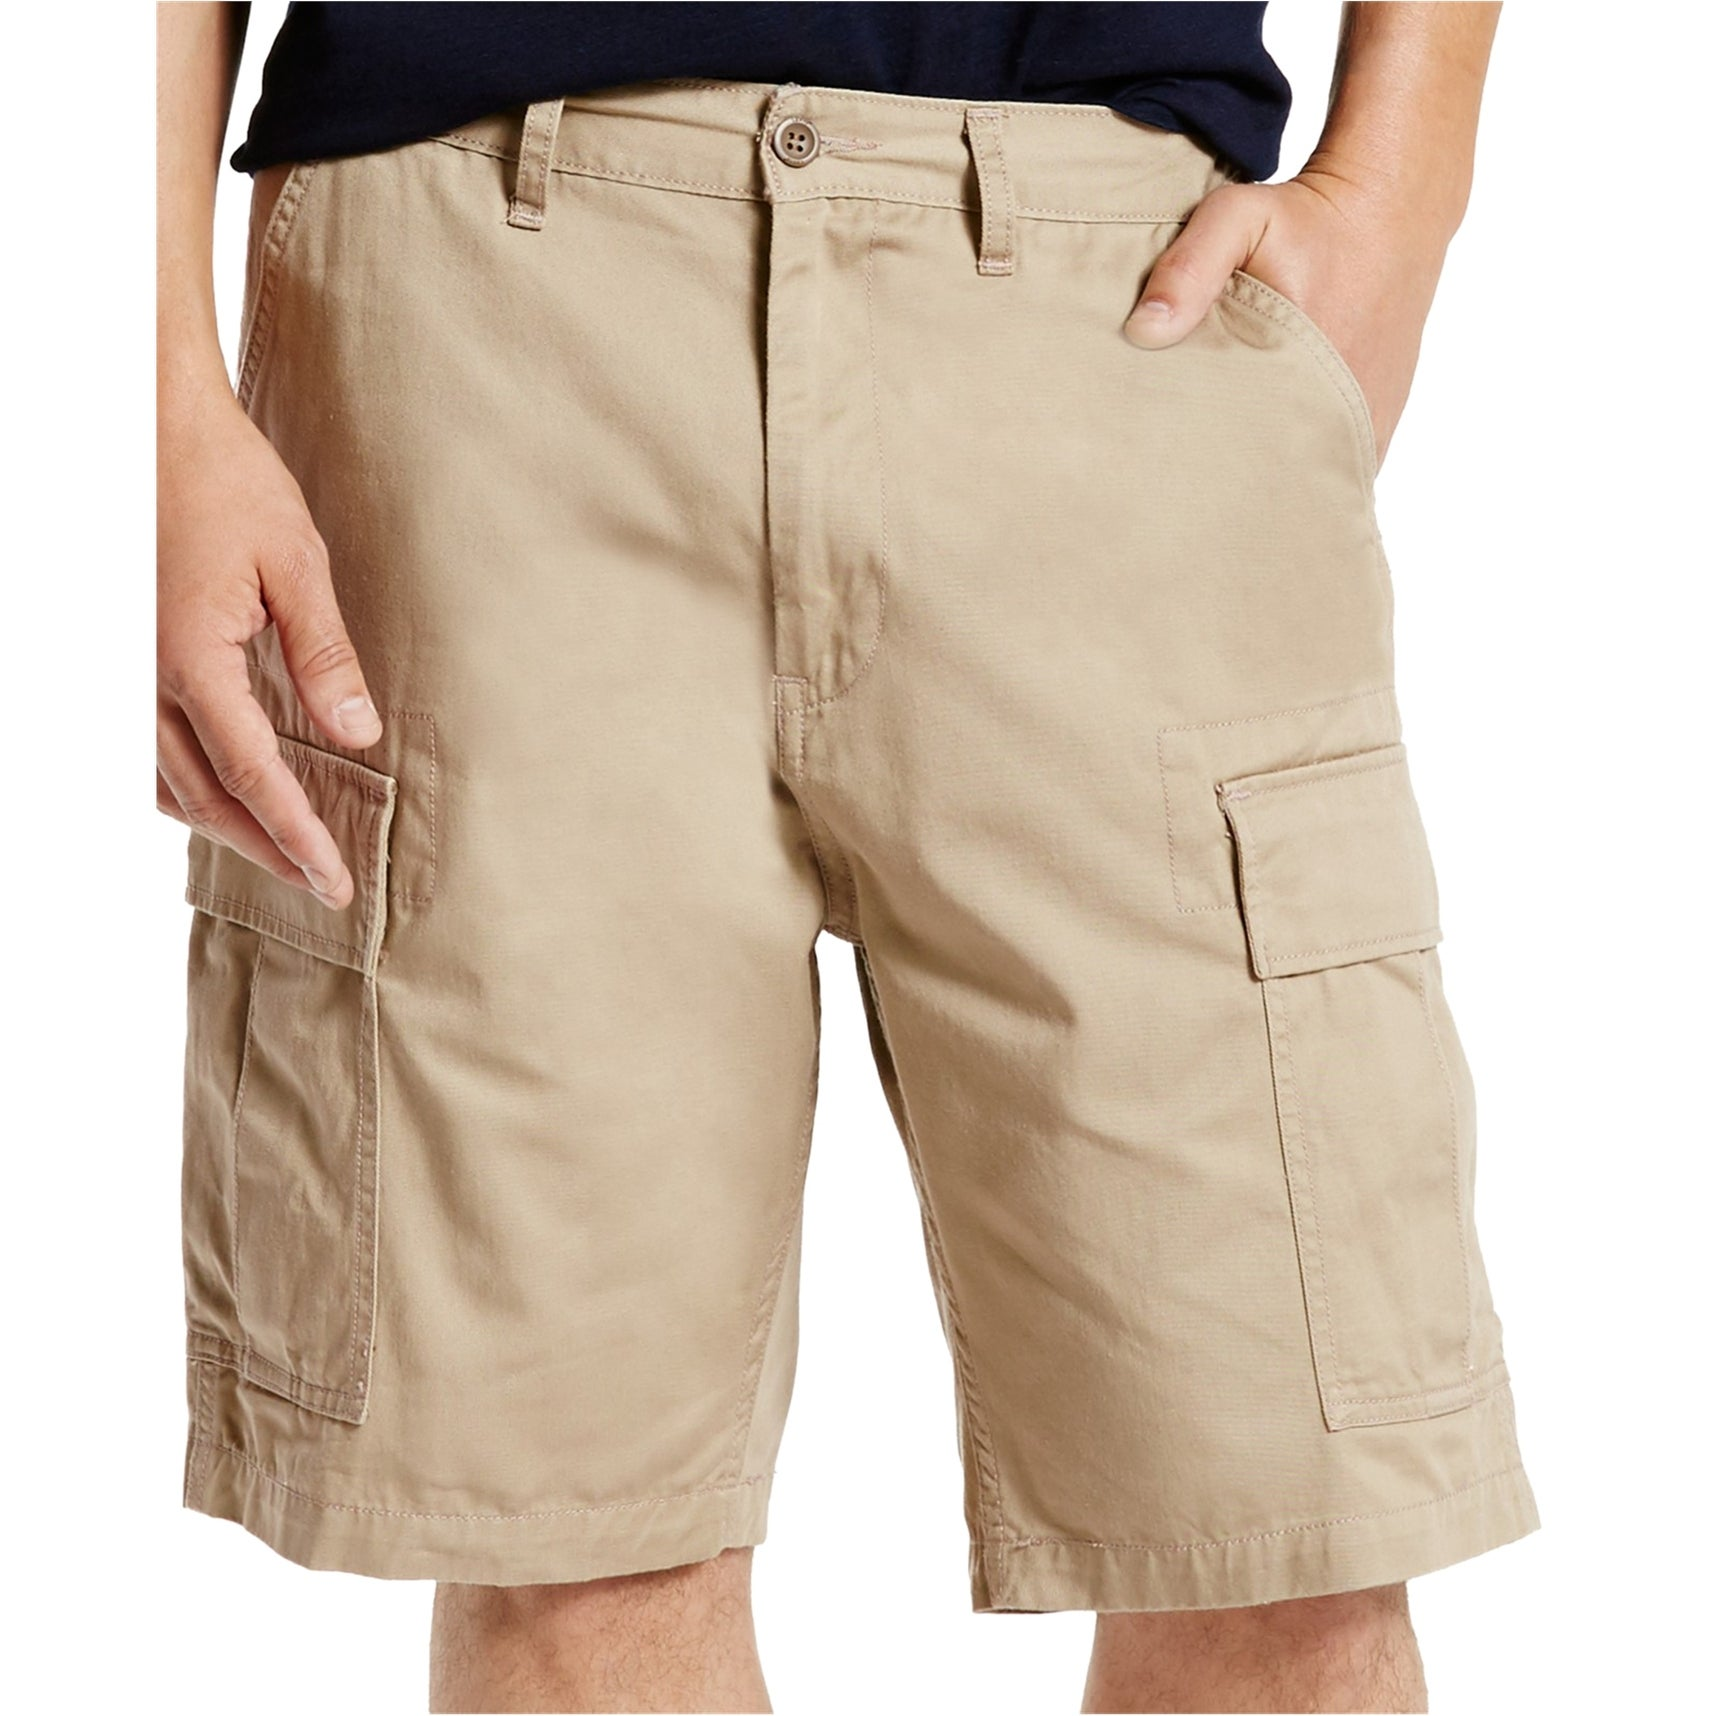 Levi/'s Men/'s Carrier Cargo Cotton Khaki Shorts Sizes Available; 34,40